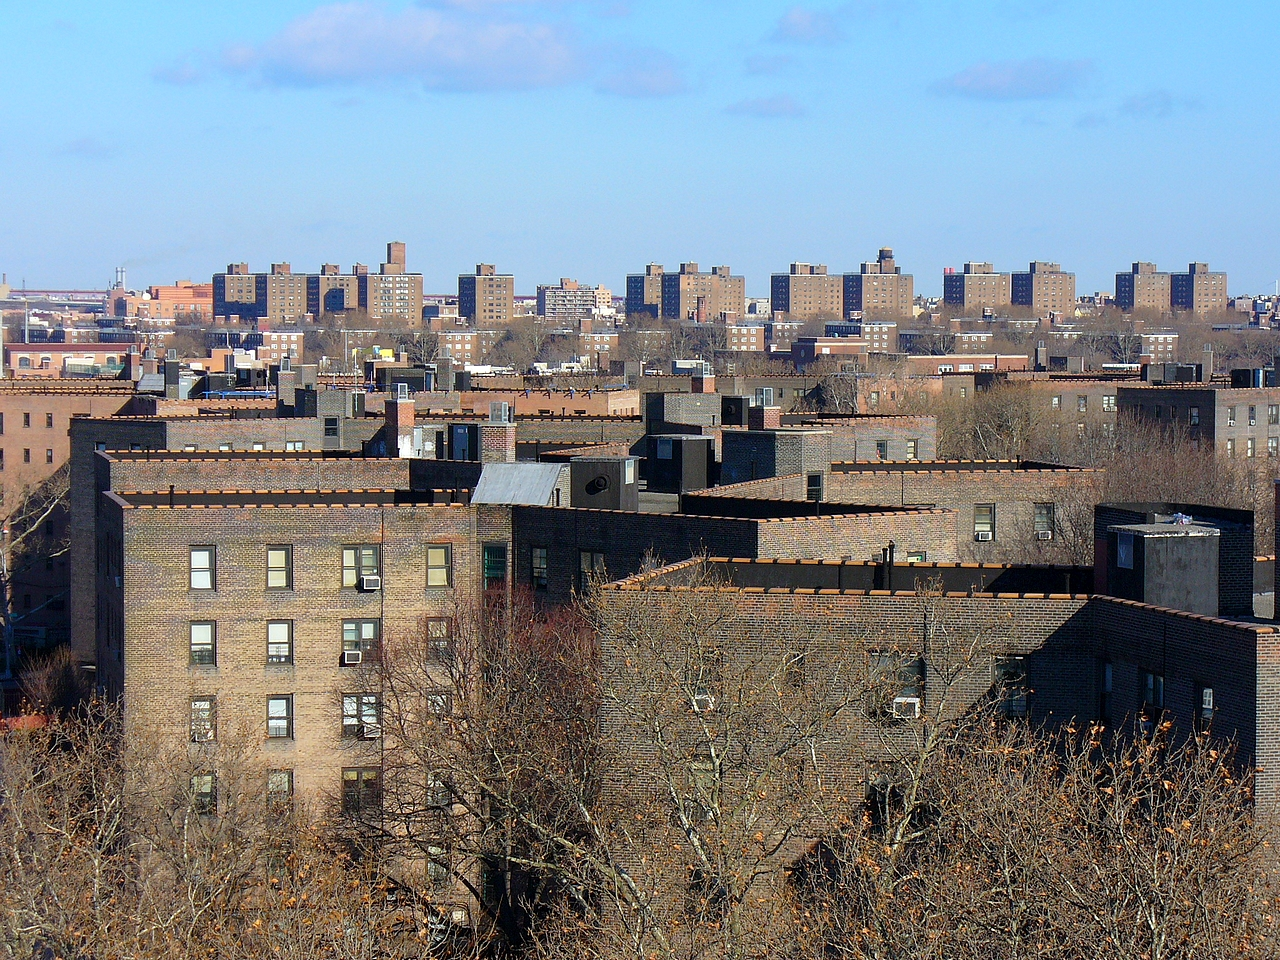 The Queensbridge Houses have 347 households with children under 6 years old, according to NYCHA data. They have not yet been tested in NYCHA's citywide lead testing initiative. Photo by Metrocentric via Wikimedia Commons